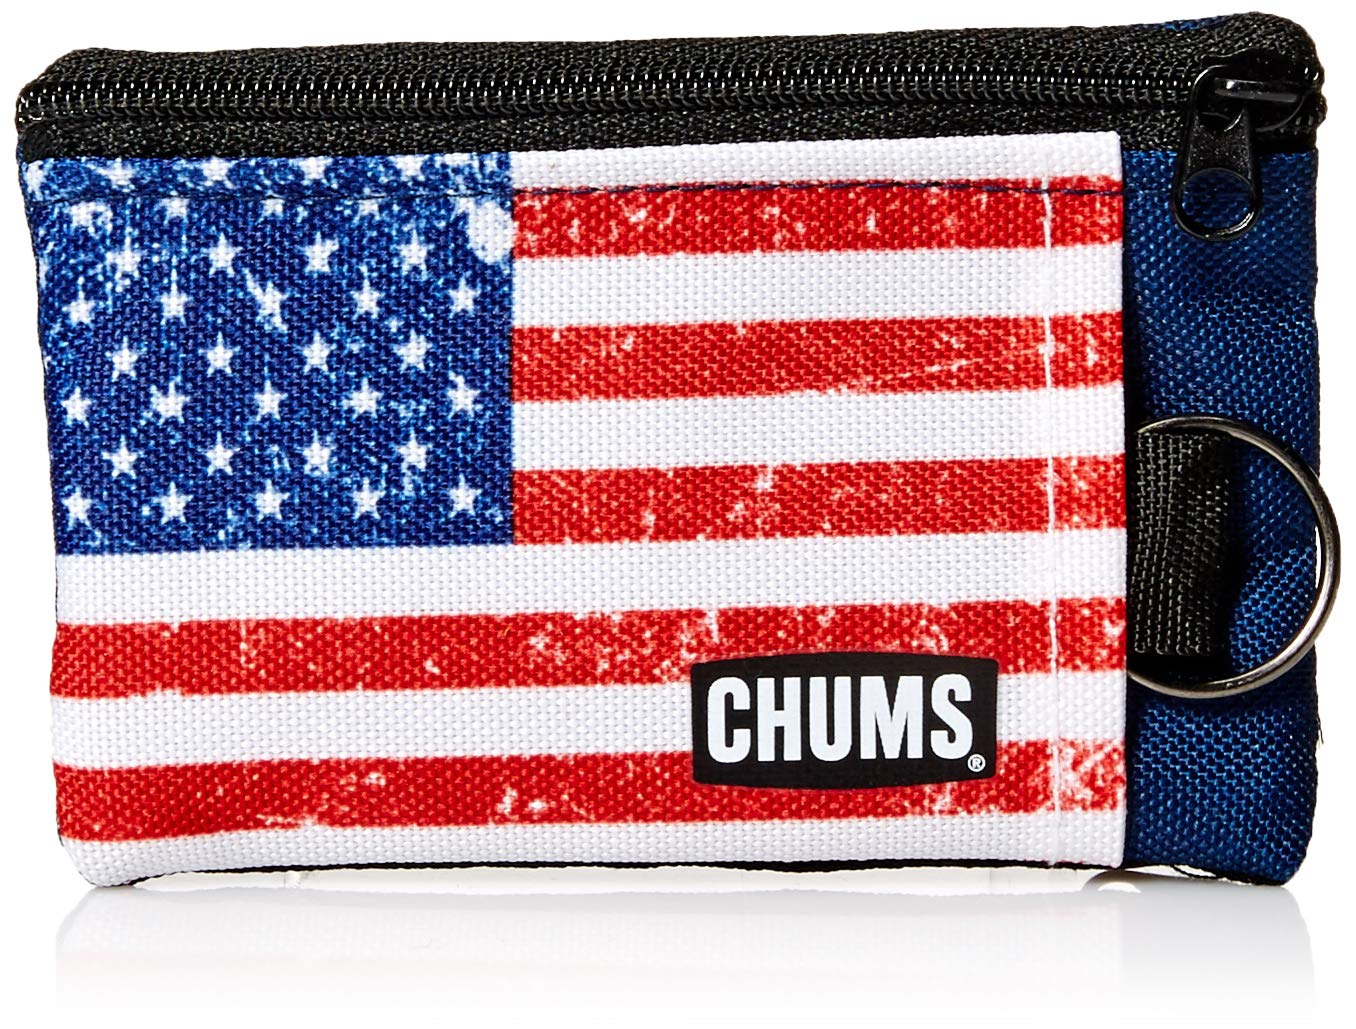 Chums Unisex Surfshort Wallet with Key Ring, American Flag, One-Size by Chums